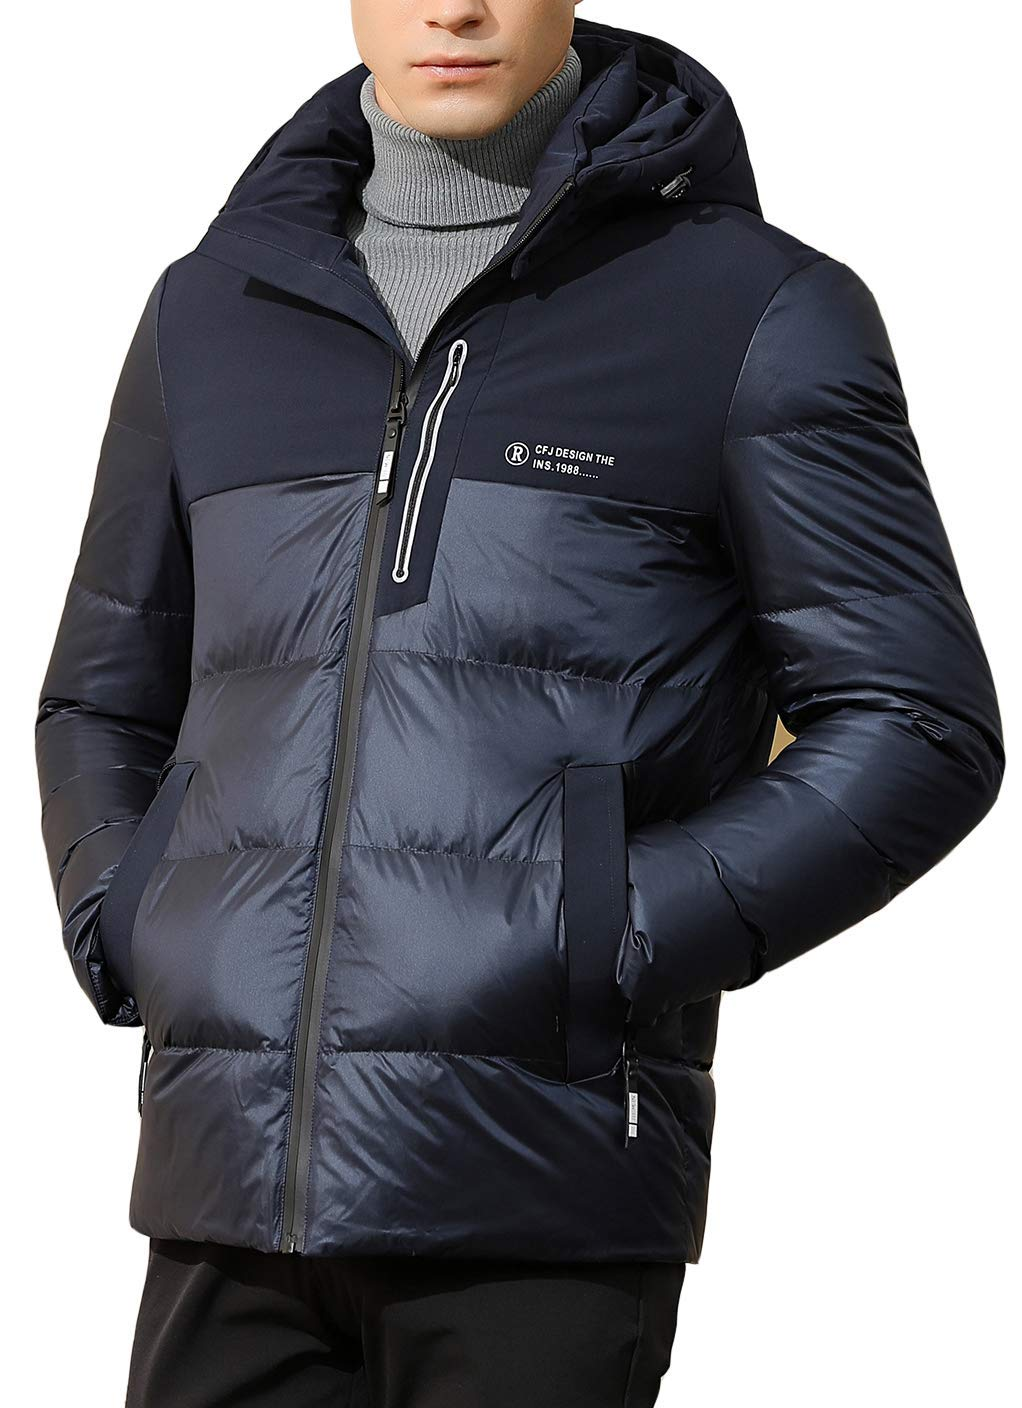 SUNNY SHOP Outdoor Lightweight Down Jacket Large Fashion Puffer Down Jackets Hooded Packable Down Coat Men Winter 9626